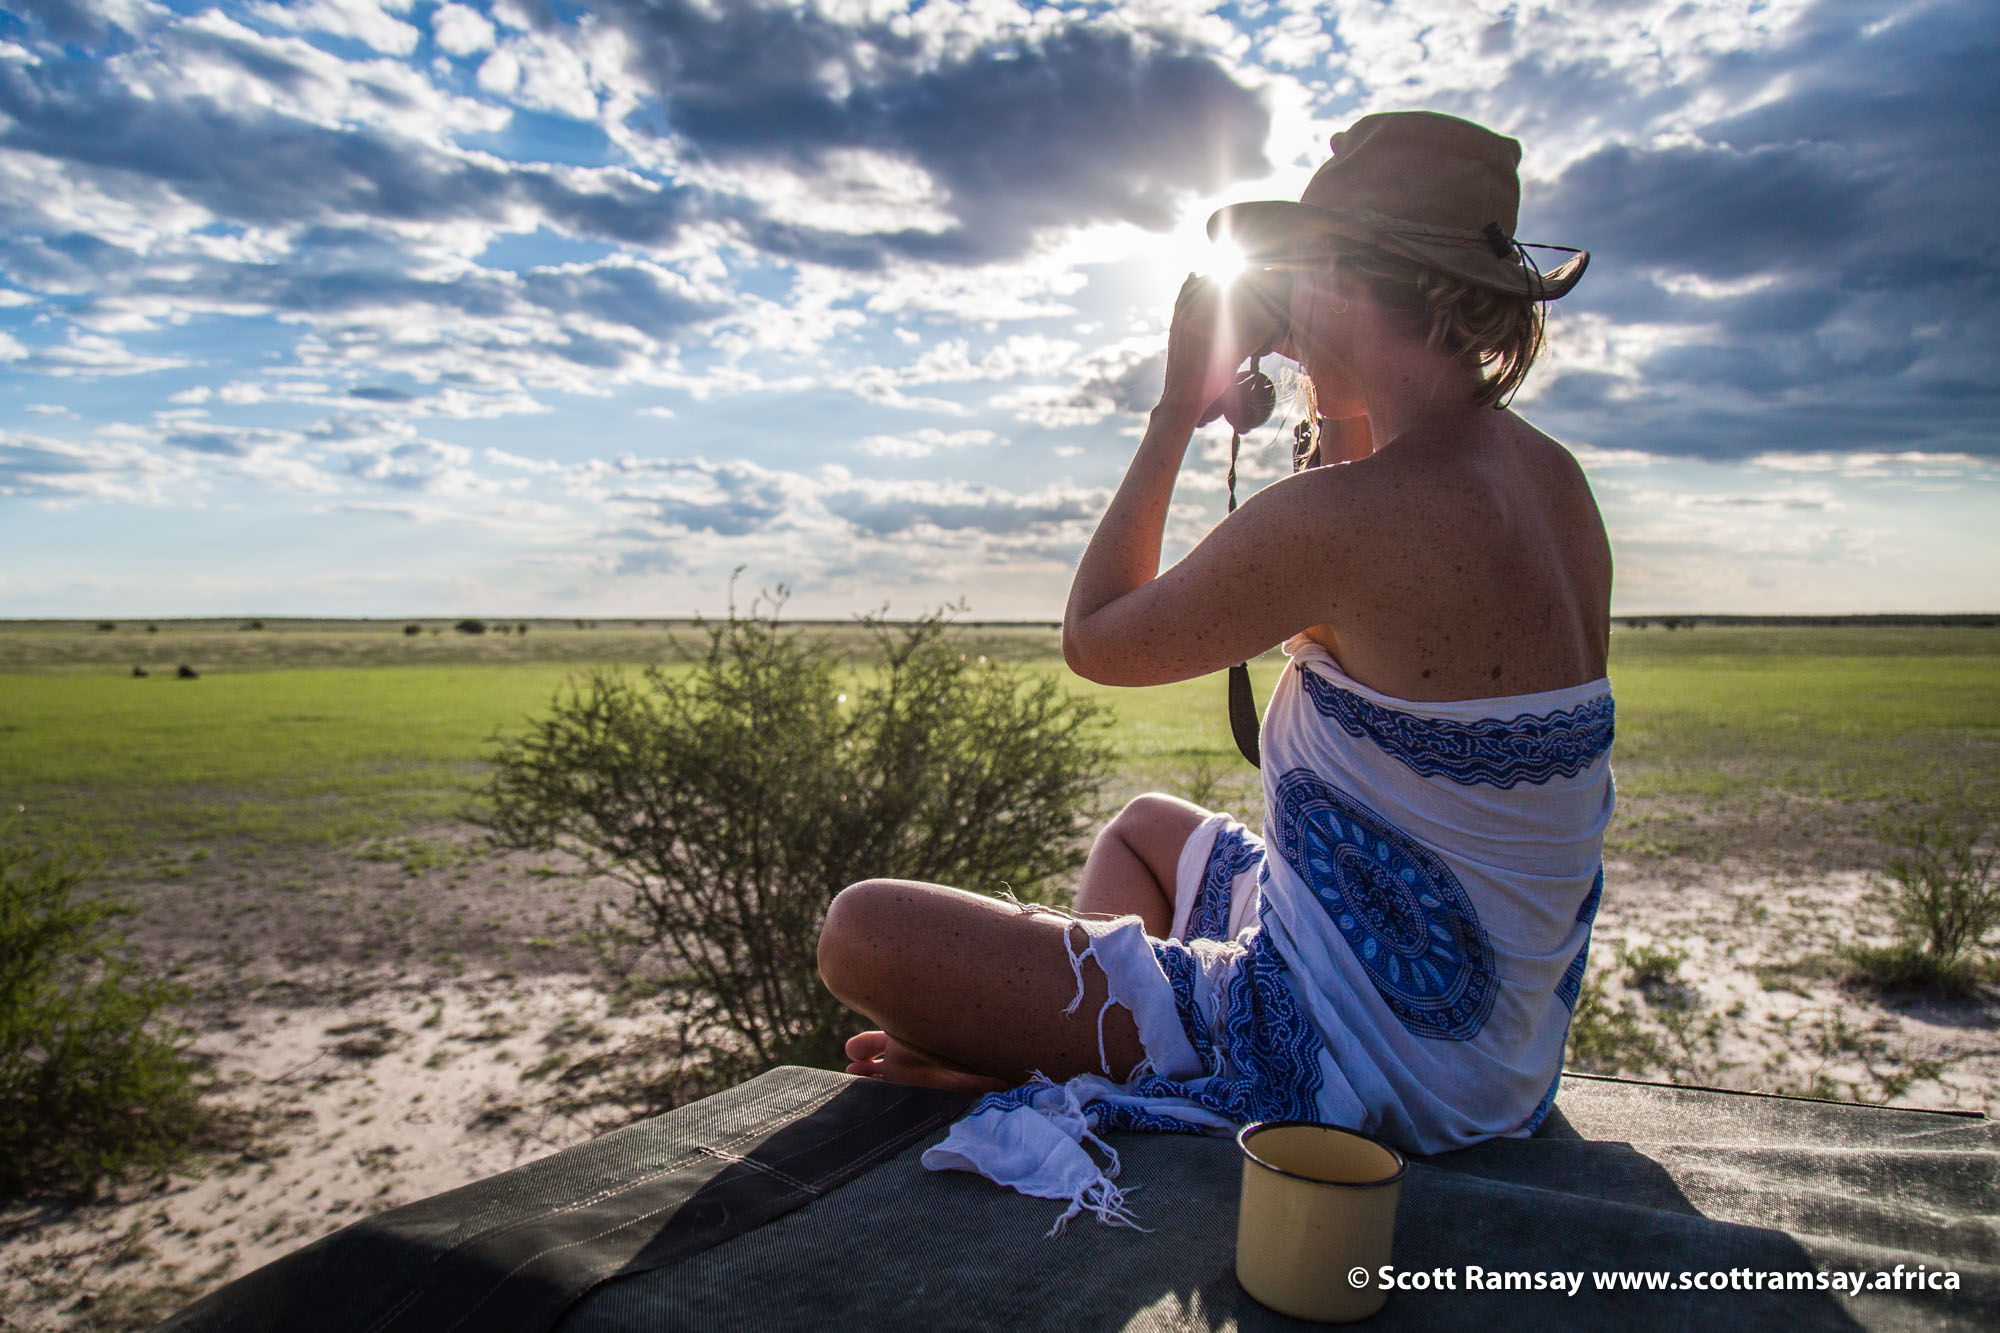 Joni checking out the lions and the general epicness of the Kalahari's incredible summer light that makes sunsets and sunrises so dreamy...